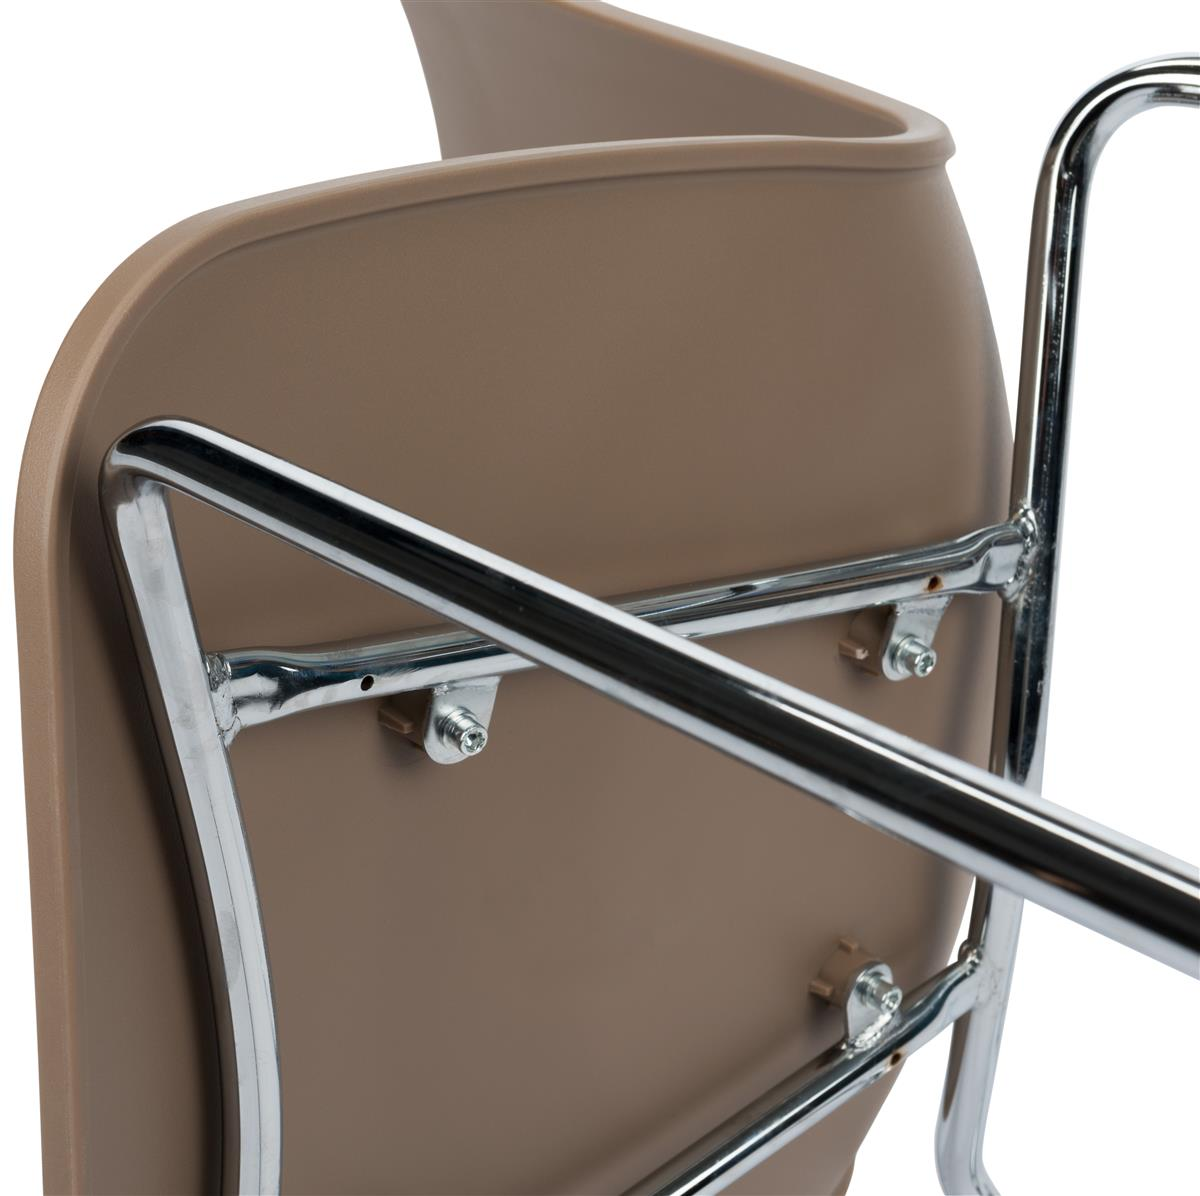 Modern plastic chairs - Set Of 2 Modern Plastic Chairs With Included Hardware